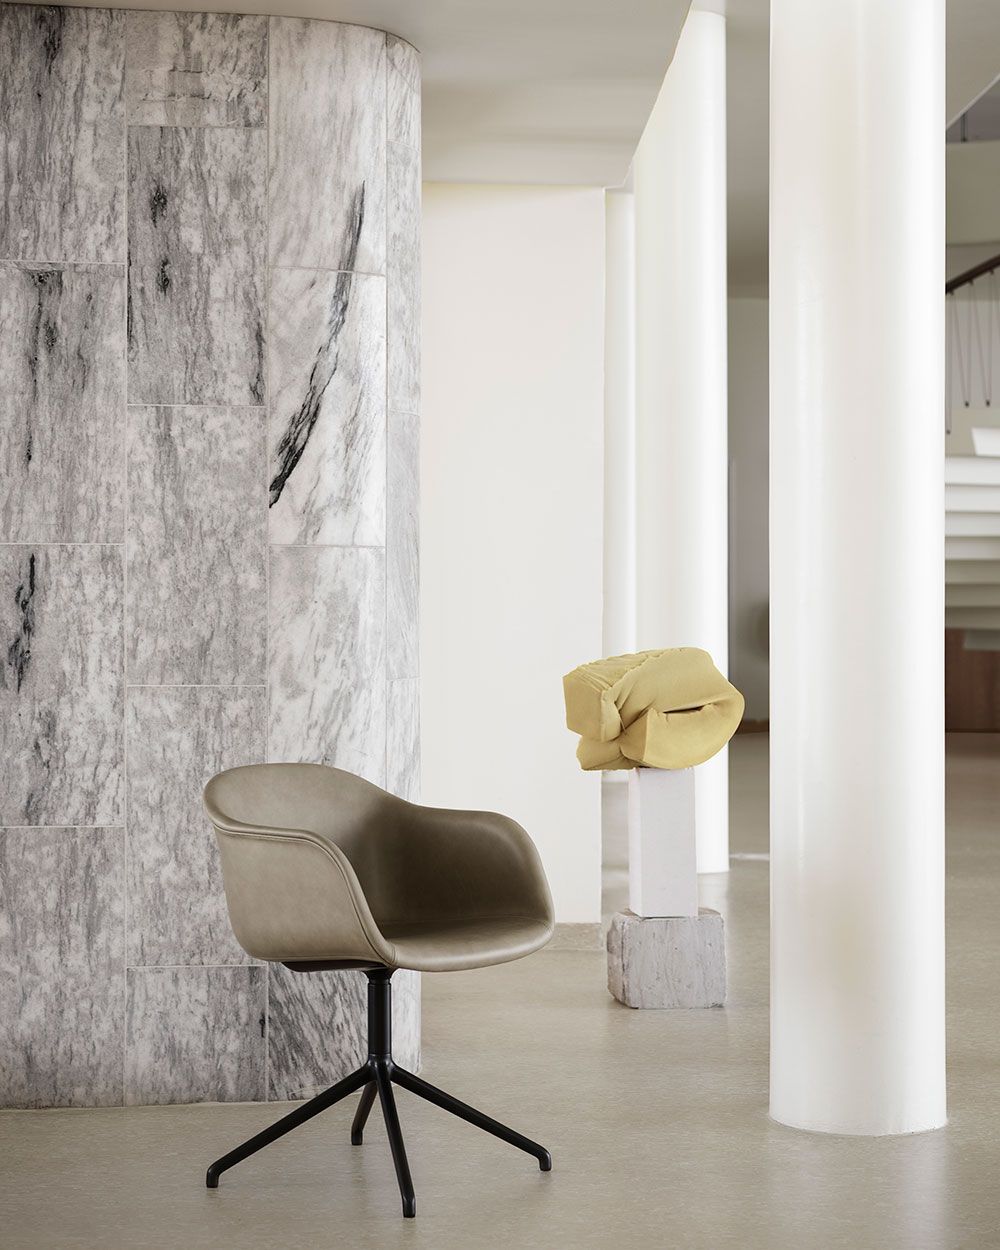 Pin On Muuto Tips And Ideas For Interior Design